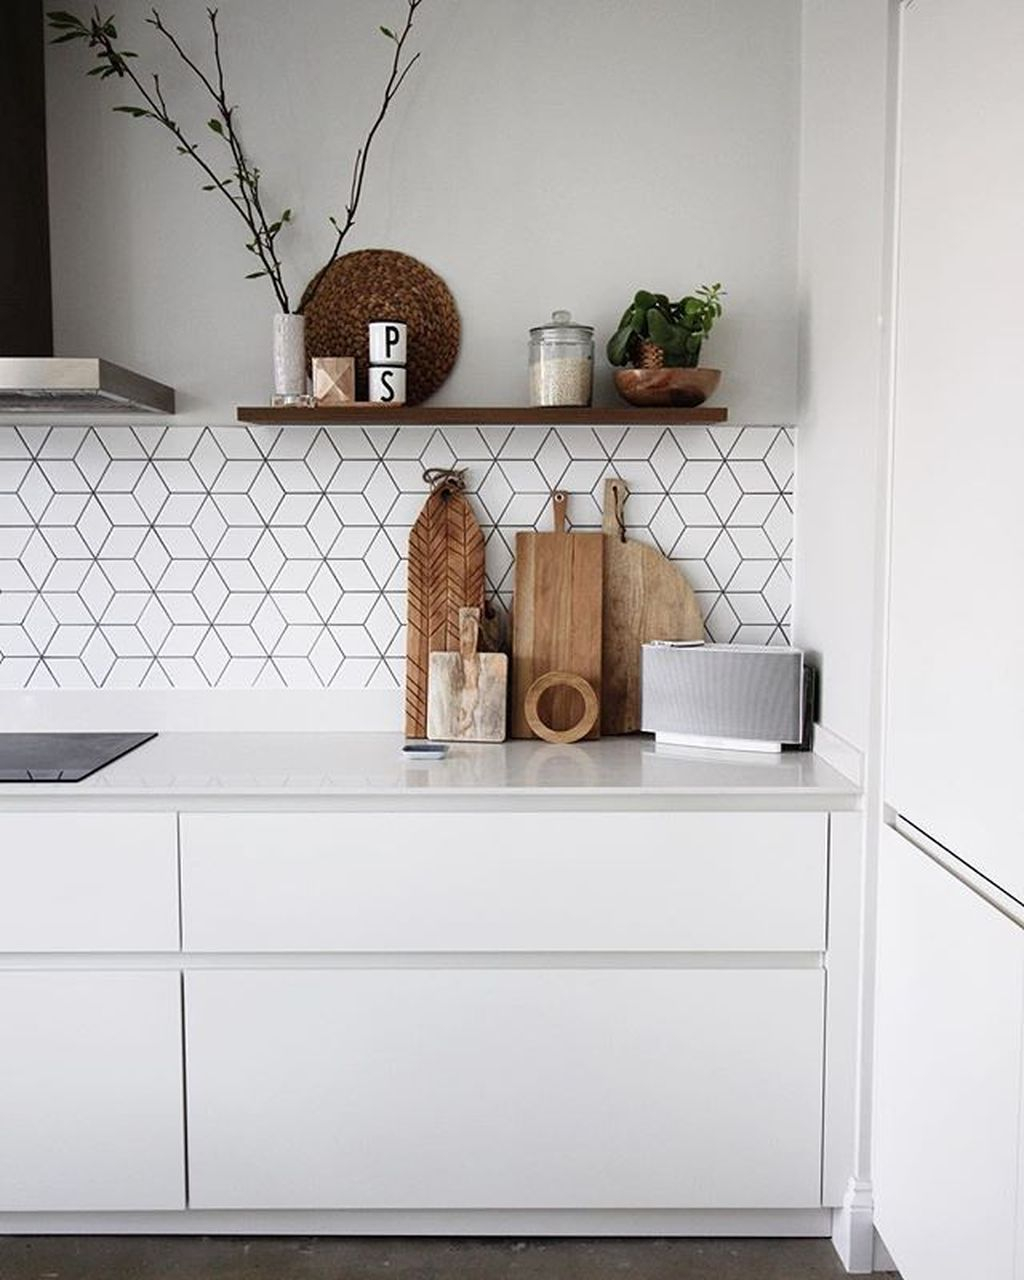 Amazing Scandinavian Kitchen Design Ideas With Island And Cabinets To Try03